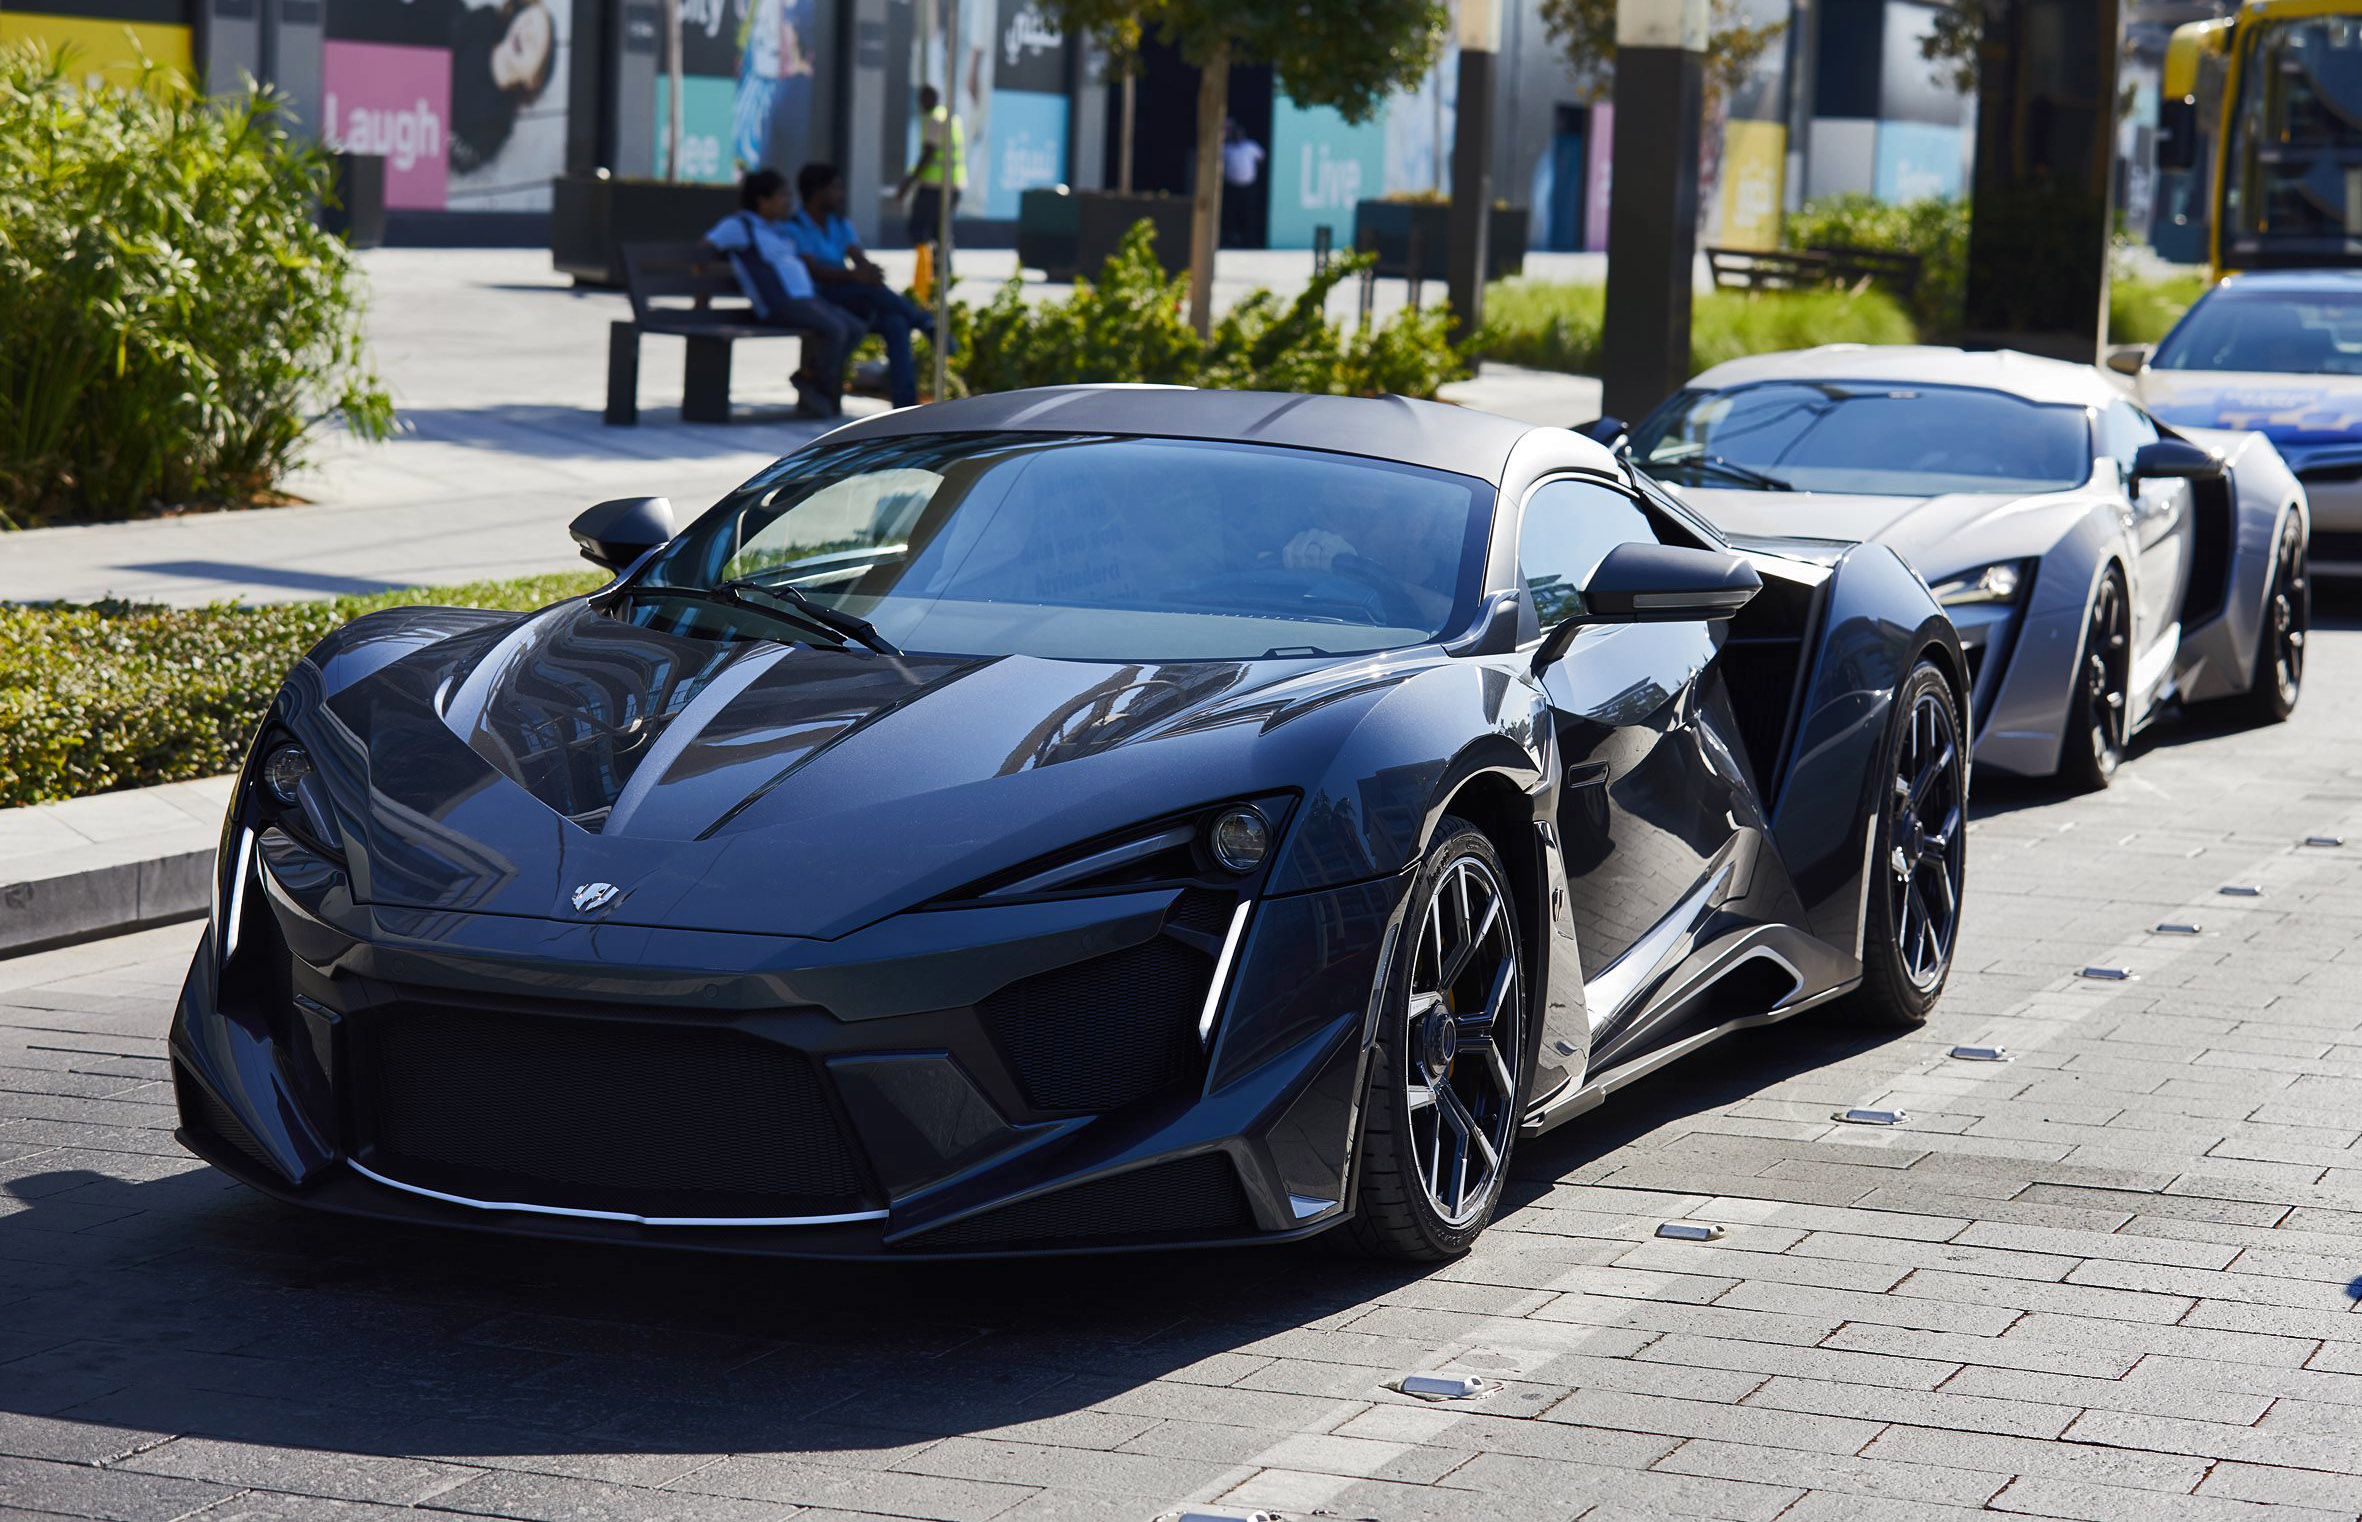 Lykan Hypersport Car >> W Motors Fenyr SuperSport + Lykan HyperSport